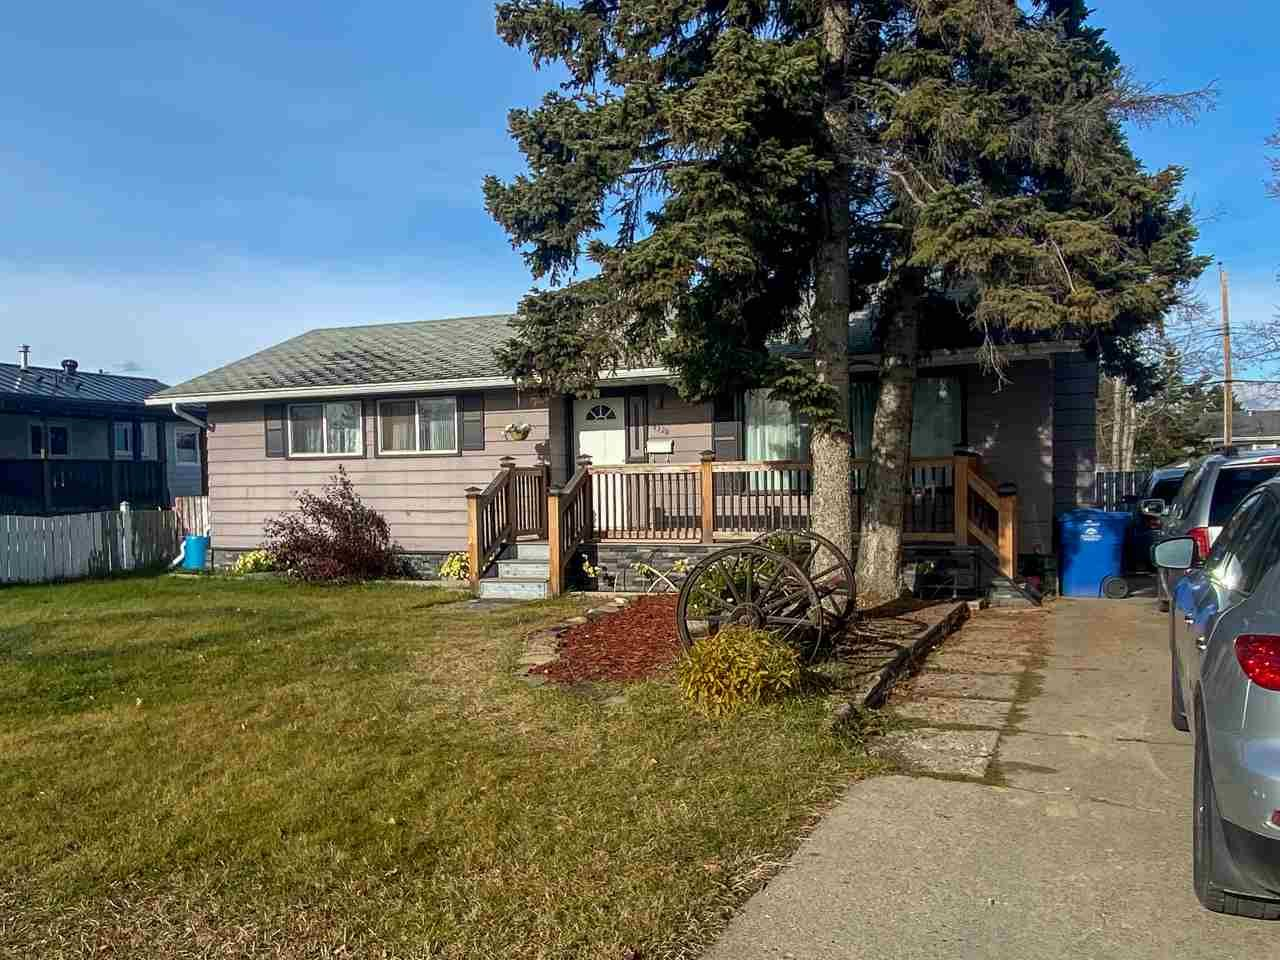 Main Photo: 9320 105 Avenue in Fort St. John: Fort St. John - City NE House for sale (Fort St. John (Zone 60))  : MLS®# R2508589